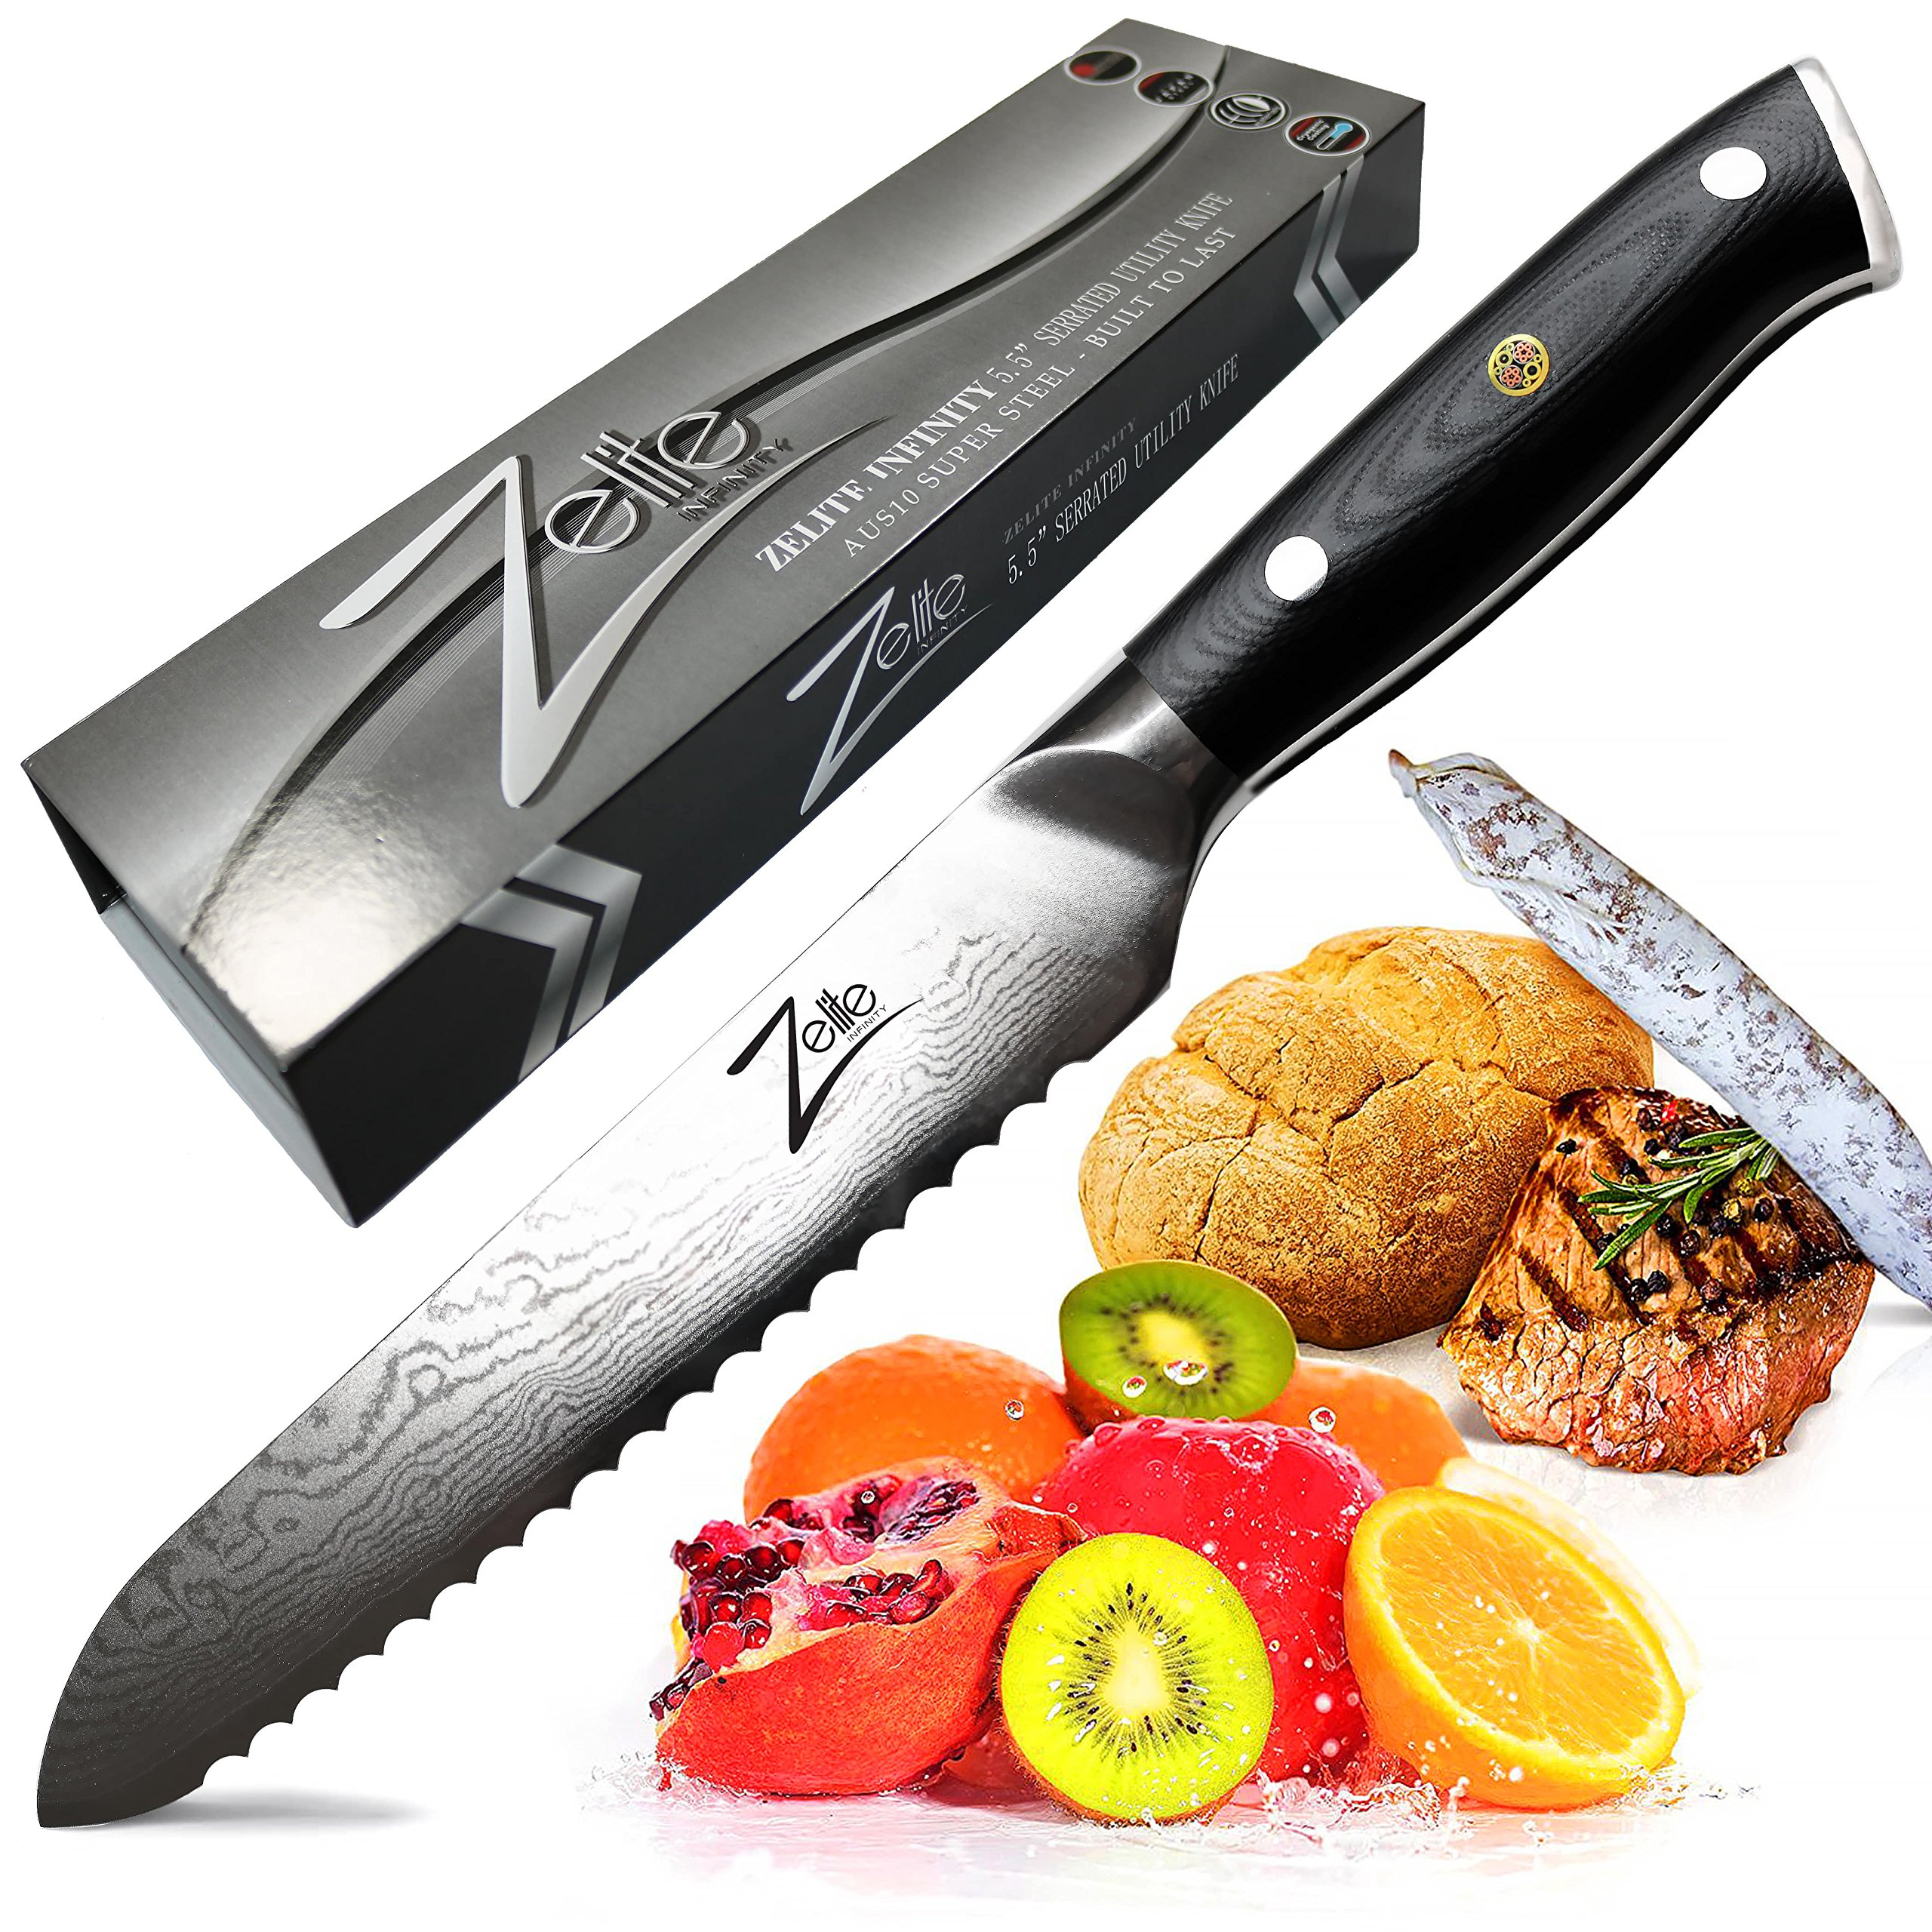 ZELITE INFINITY Serrated Utility Knife 5.5'' - Alpha-Royal Series - Japanese AUS10 Super Steel 67 Layer High Carbon Stainless Steel - Razor Sharp! Steak, Sausage, Tomato, Bread, Sandwich, Fruit Knives